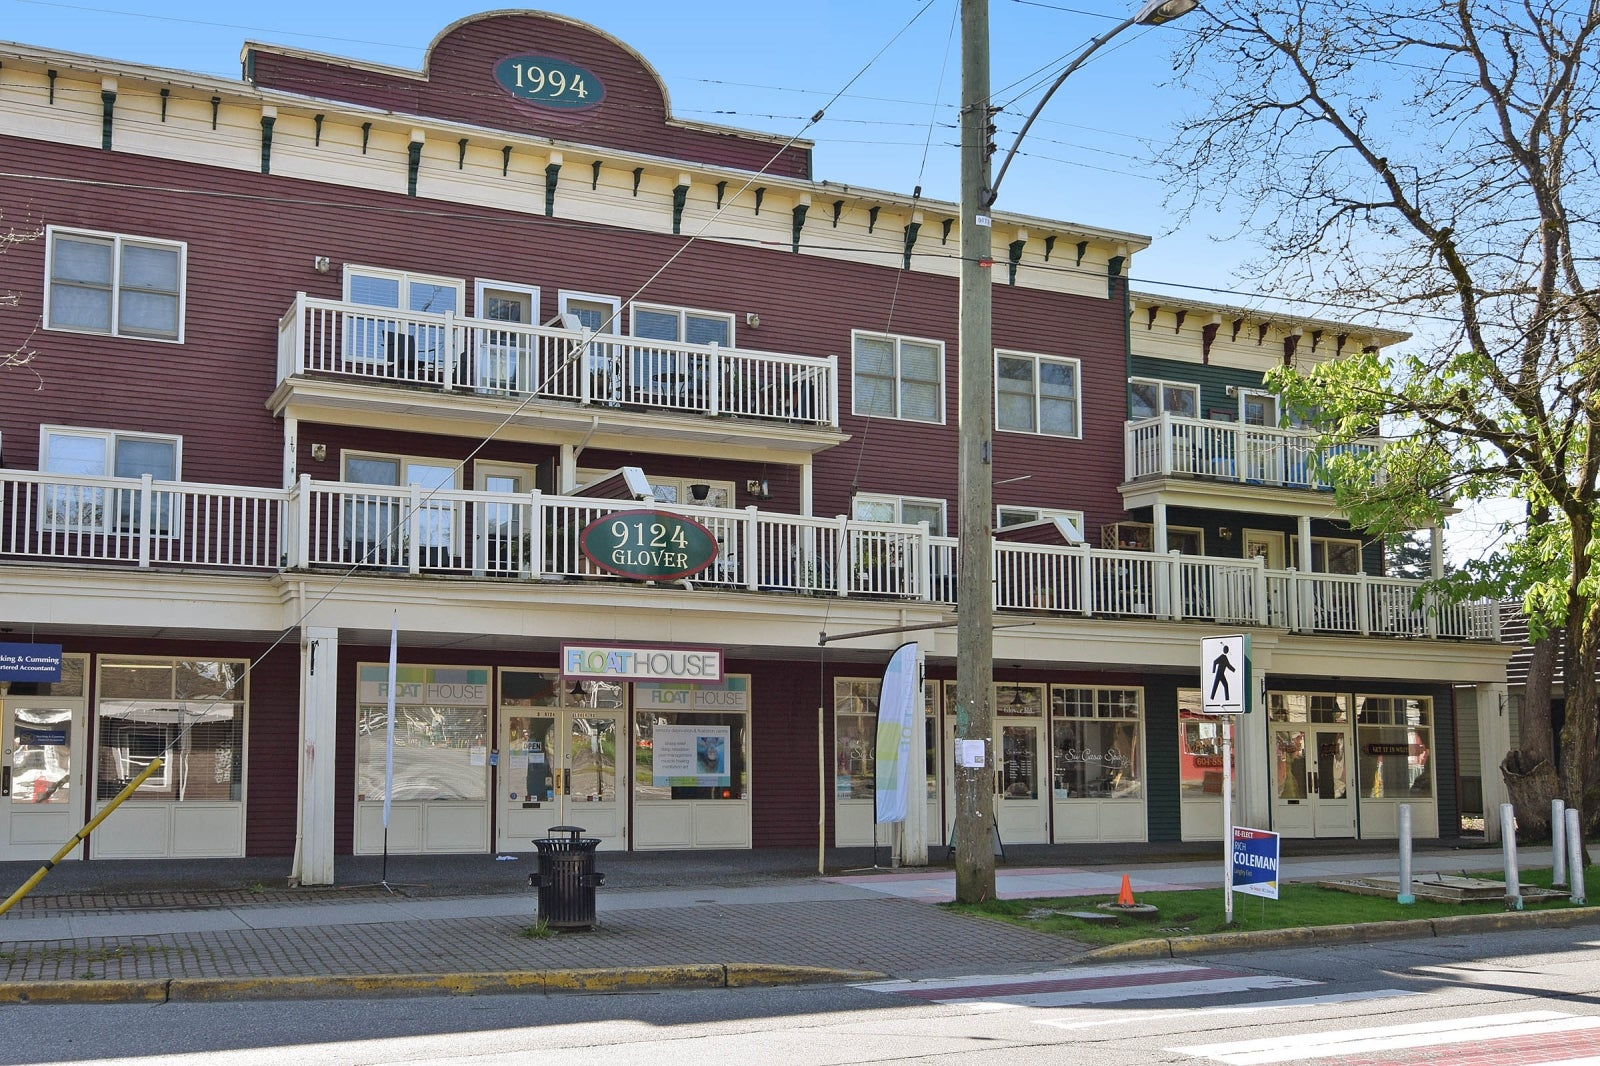 202 9124 GLOVER ROAD - Fort Langley Apartment/Condo for sale, 2 Bedrooms (R2162527) #1